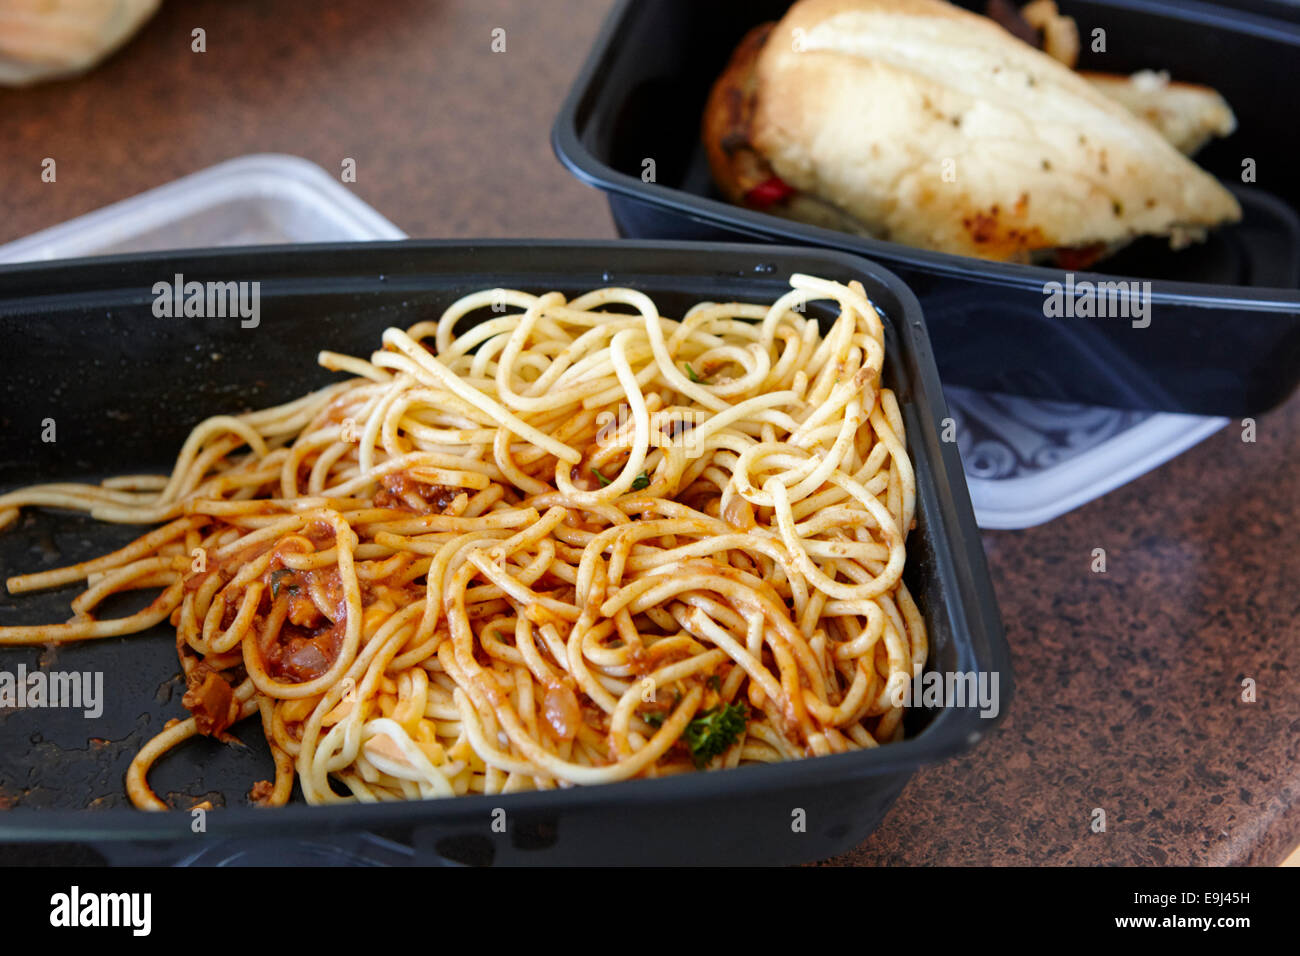 boxed leftovers of spaghetti and sandwich from a restaurant in Saskatchewan Canada - Stock Image